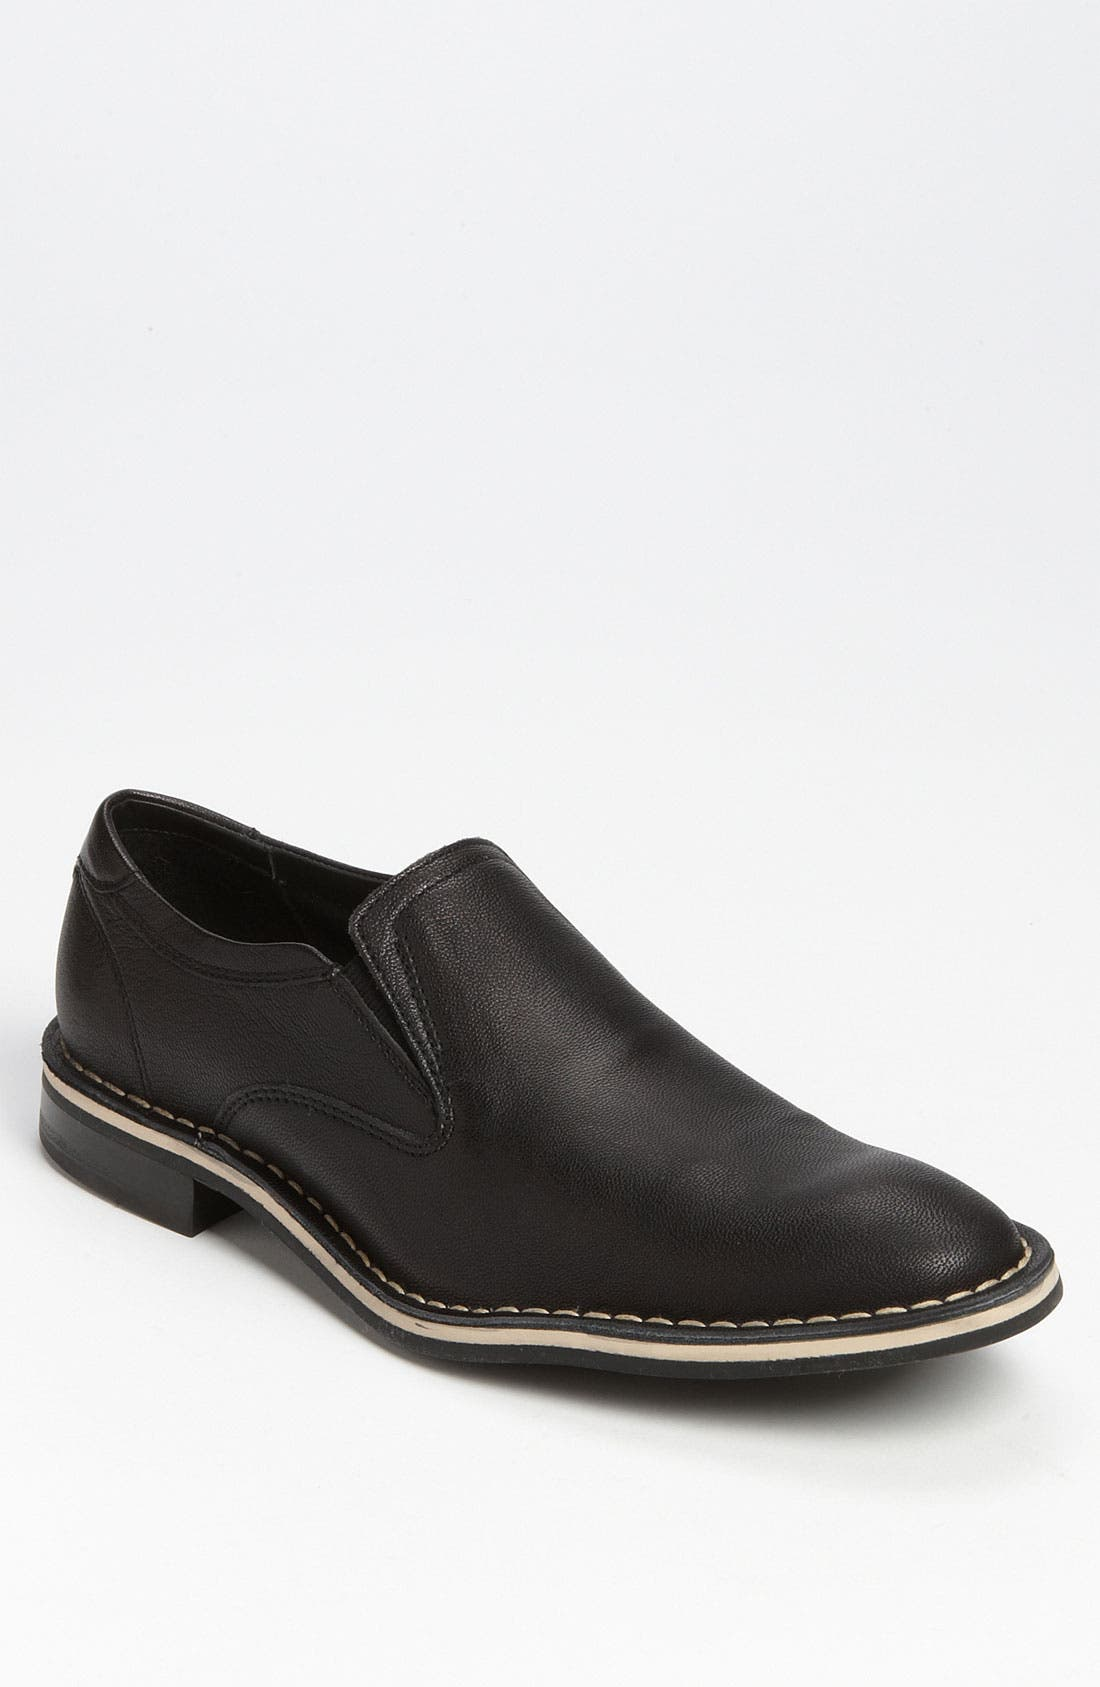 Alternate Image 1 Selected - Cole Haan 'Air Stratton' Slip-On